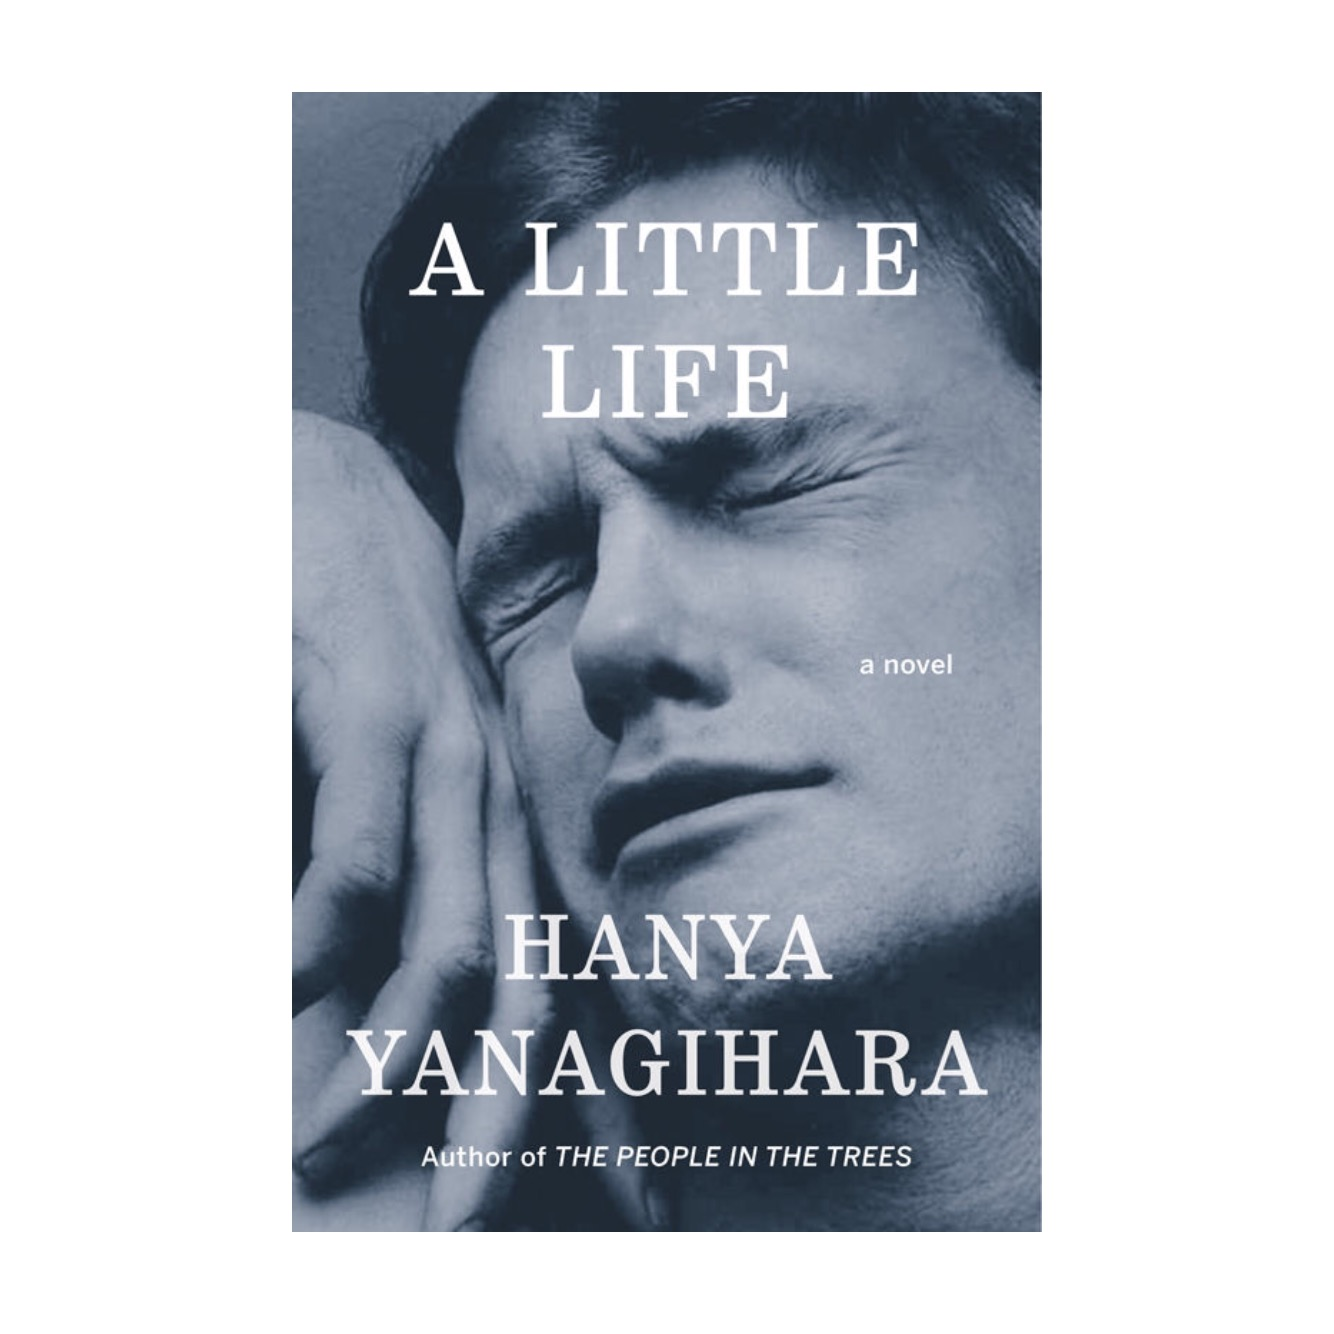 A Little Life by Hana Yanagihara – Book Review